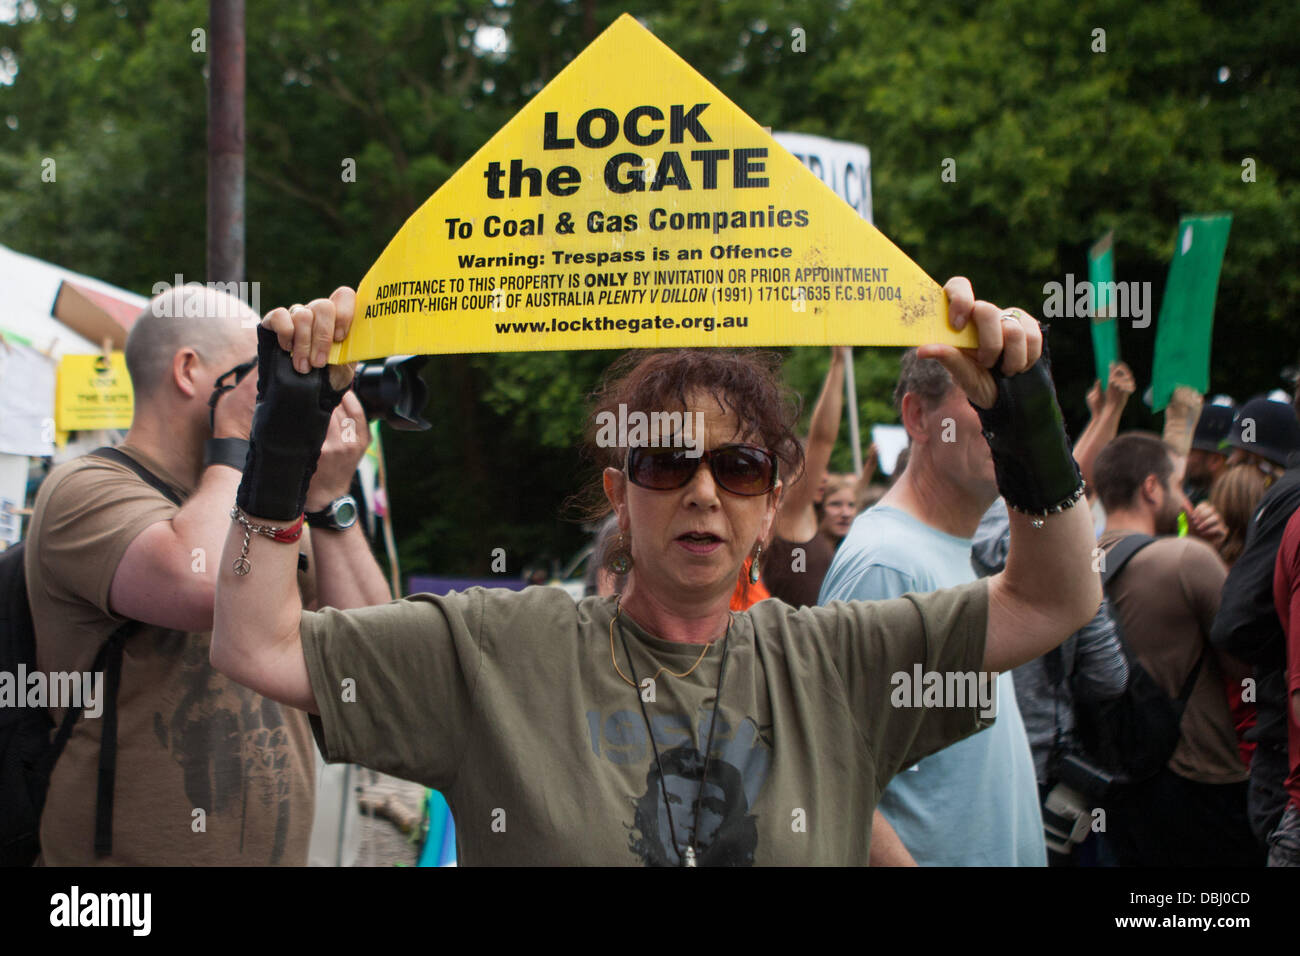 Balcombe, West Sussex, UK. 31st July, 2013. Woman holds aloft Lock the Gate placard. Protest against Cuadrilla drilling & fracking just outside the village of Balcombe in West Sussex. Balcombe, West Sussex, UK. Credit:  martyn wheatley/Alamy Live News Stock Photo